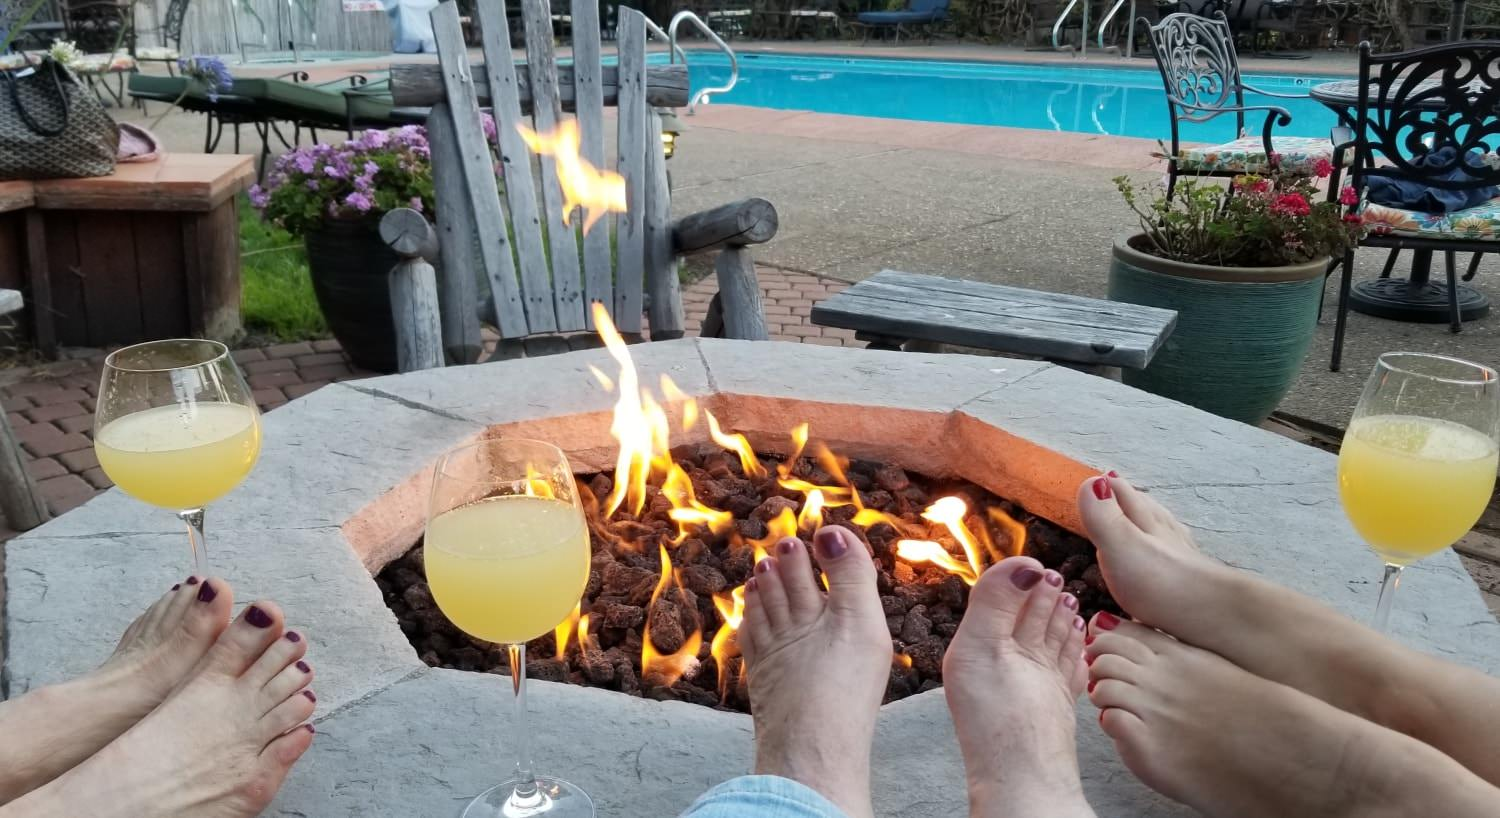 Three ladies feet with painted toe nails resting on firepit with wine glasses overlooking a fire near the pool